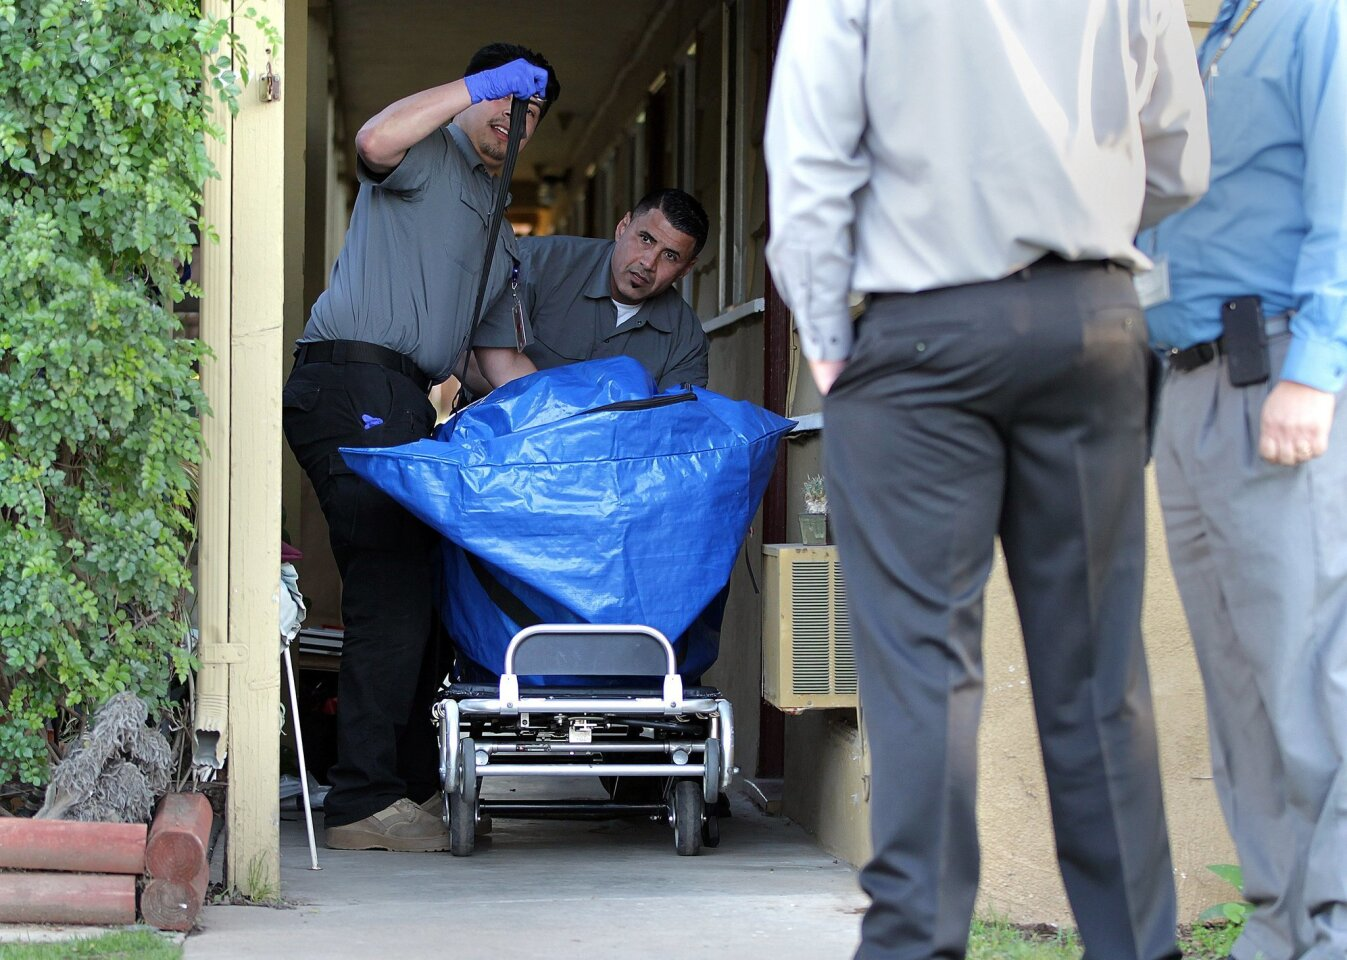 Coroner's office employees prep the gurney for transport from the home.